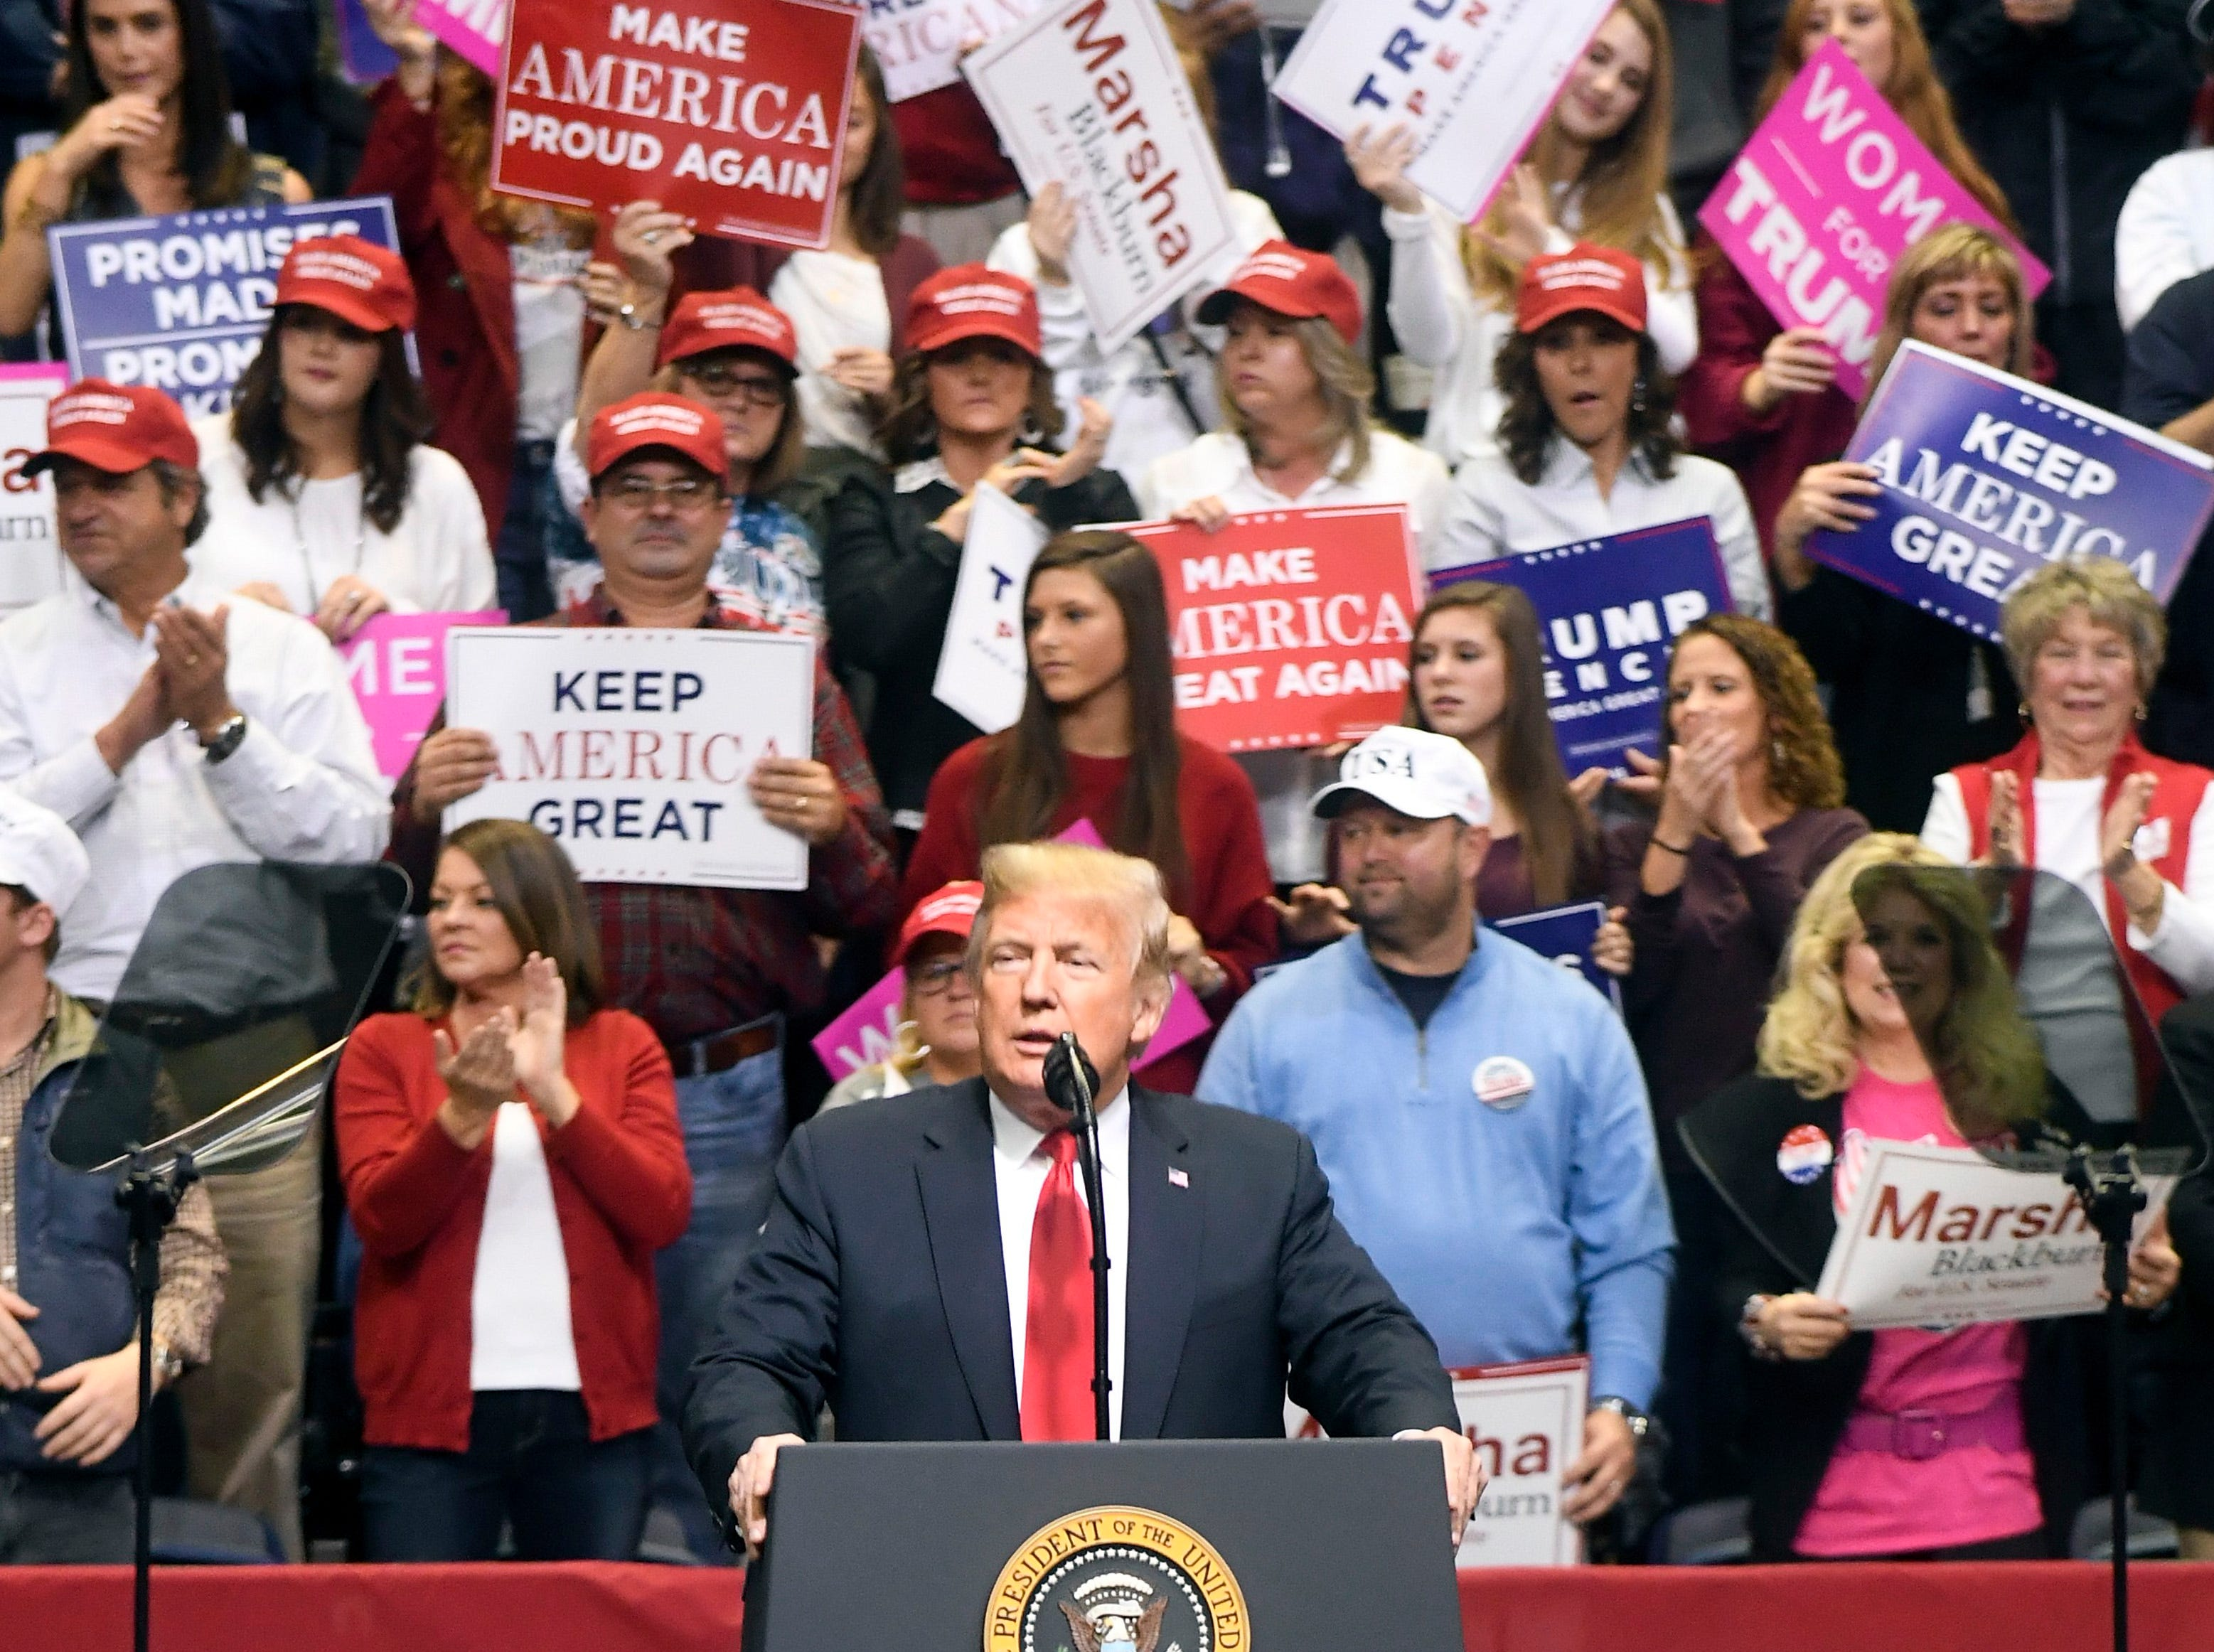 President Donald Trump welcomes the crowd at a rally for Rep. Marsha Blackburn at McKenzie Arena on Sunday, November 4, 2018.